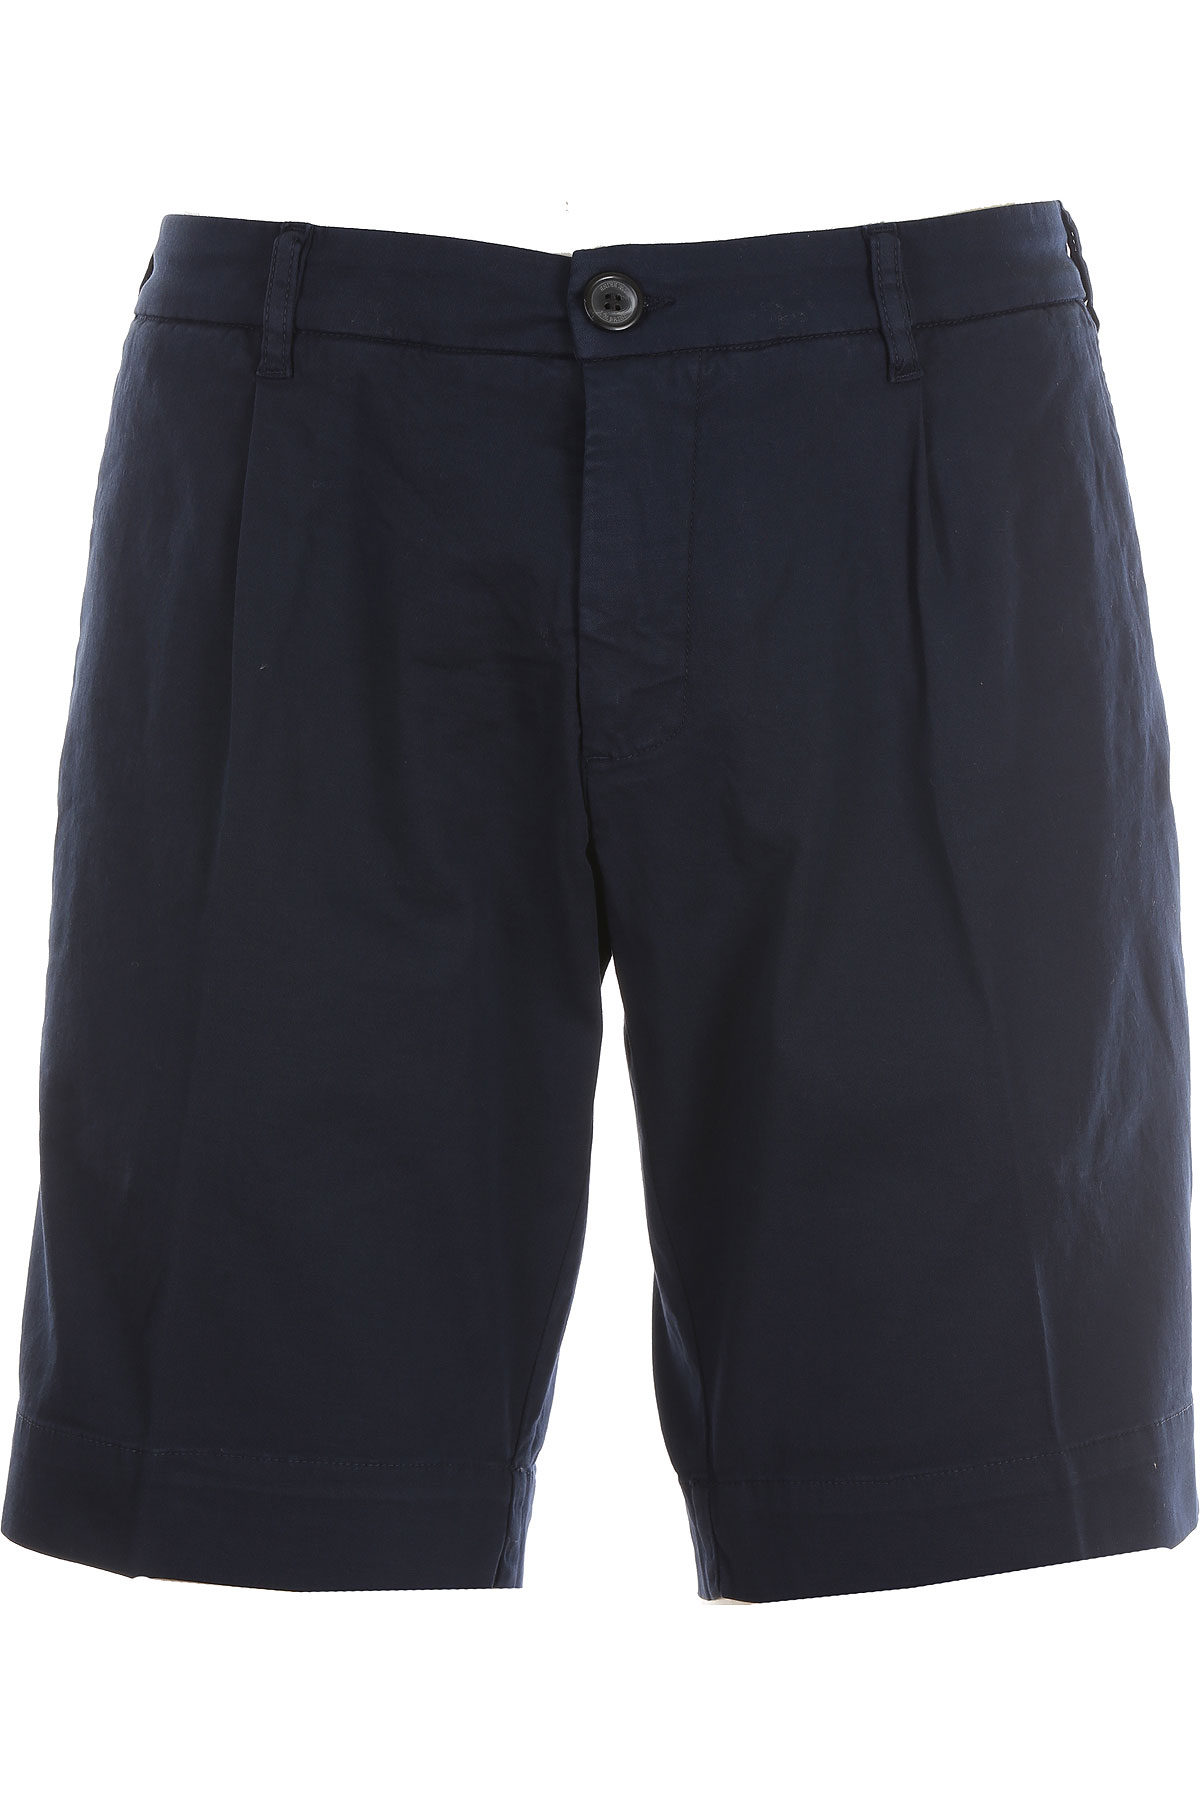 J.W. Brine Shorts for Men On Sale, Navy Blue, Cotton, 2019, 30 32 34 36 40